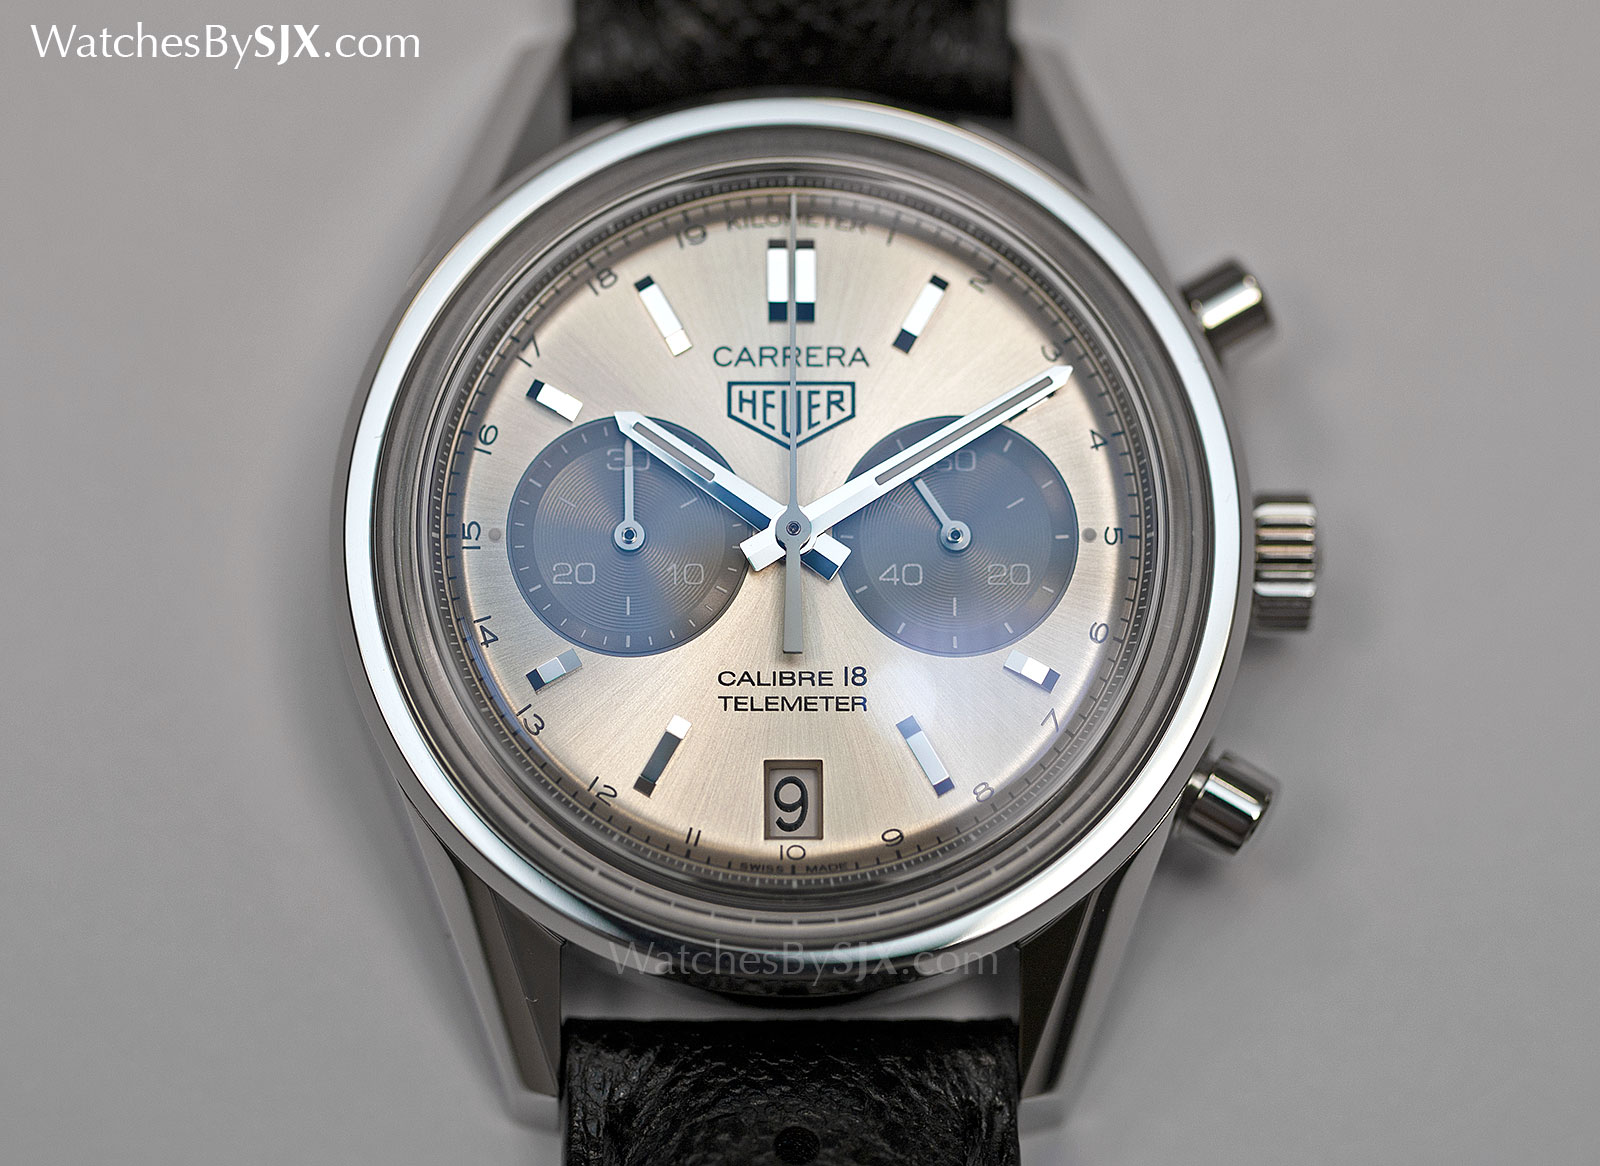 b443dbbc6c7 Watches By SJX  Hands-On with the TAG Heuer Carrera Calibre 18 Telemeter